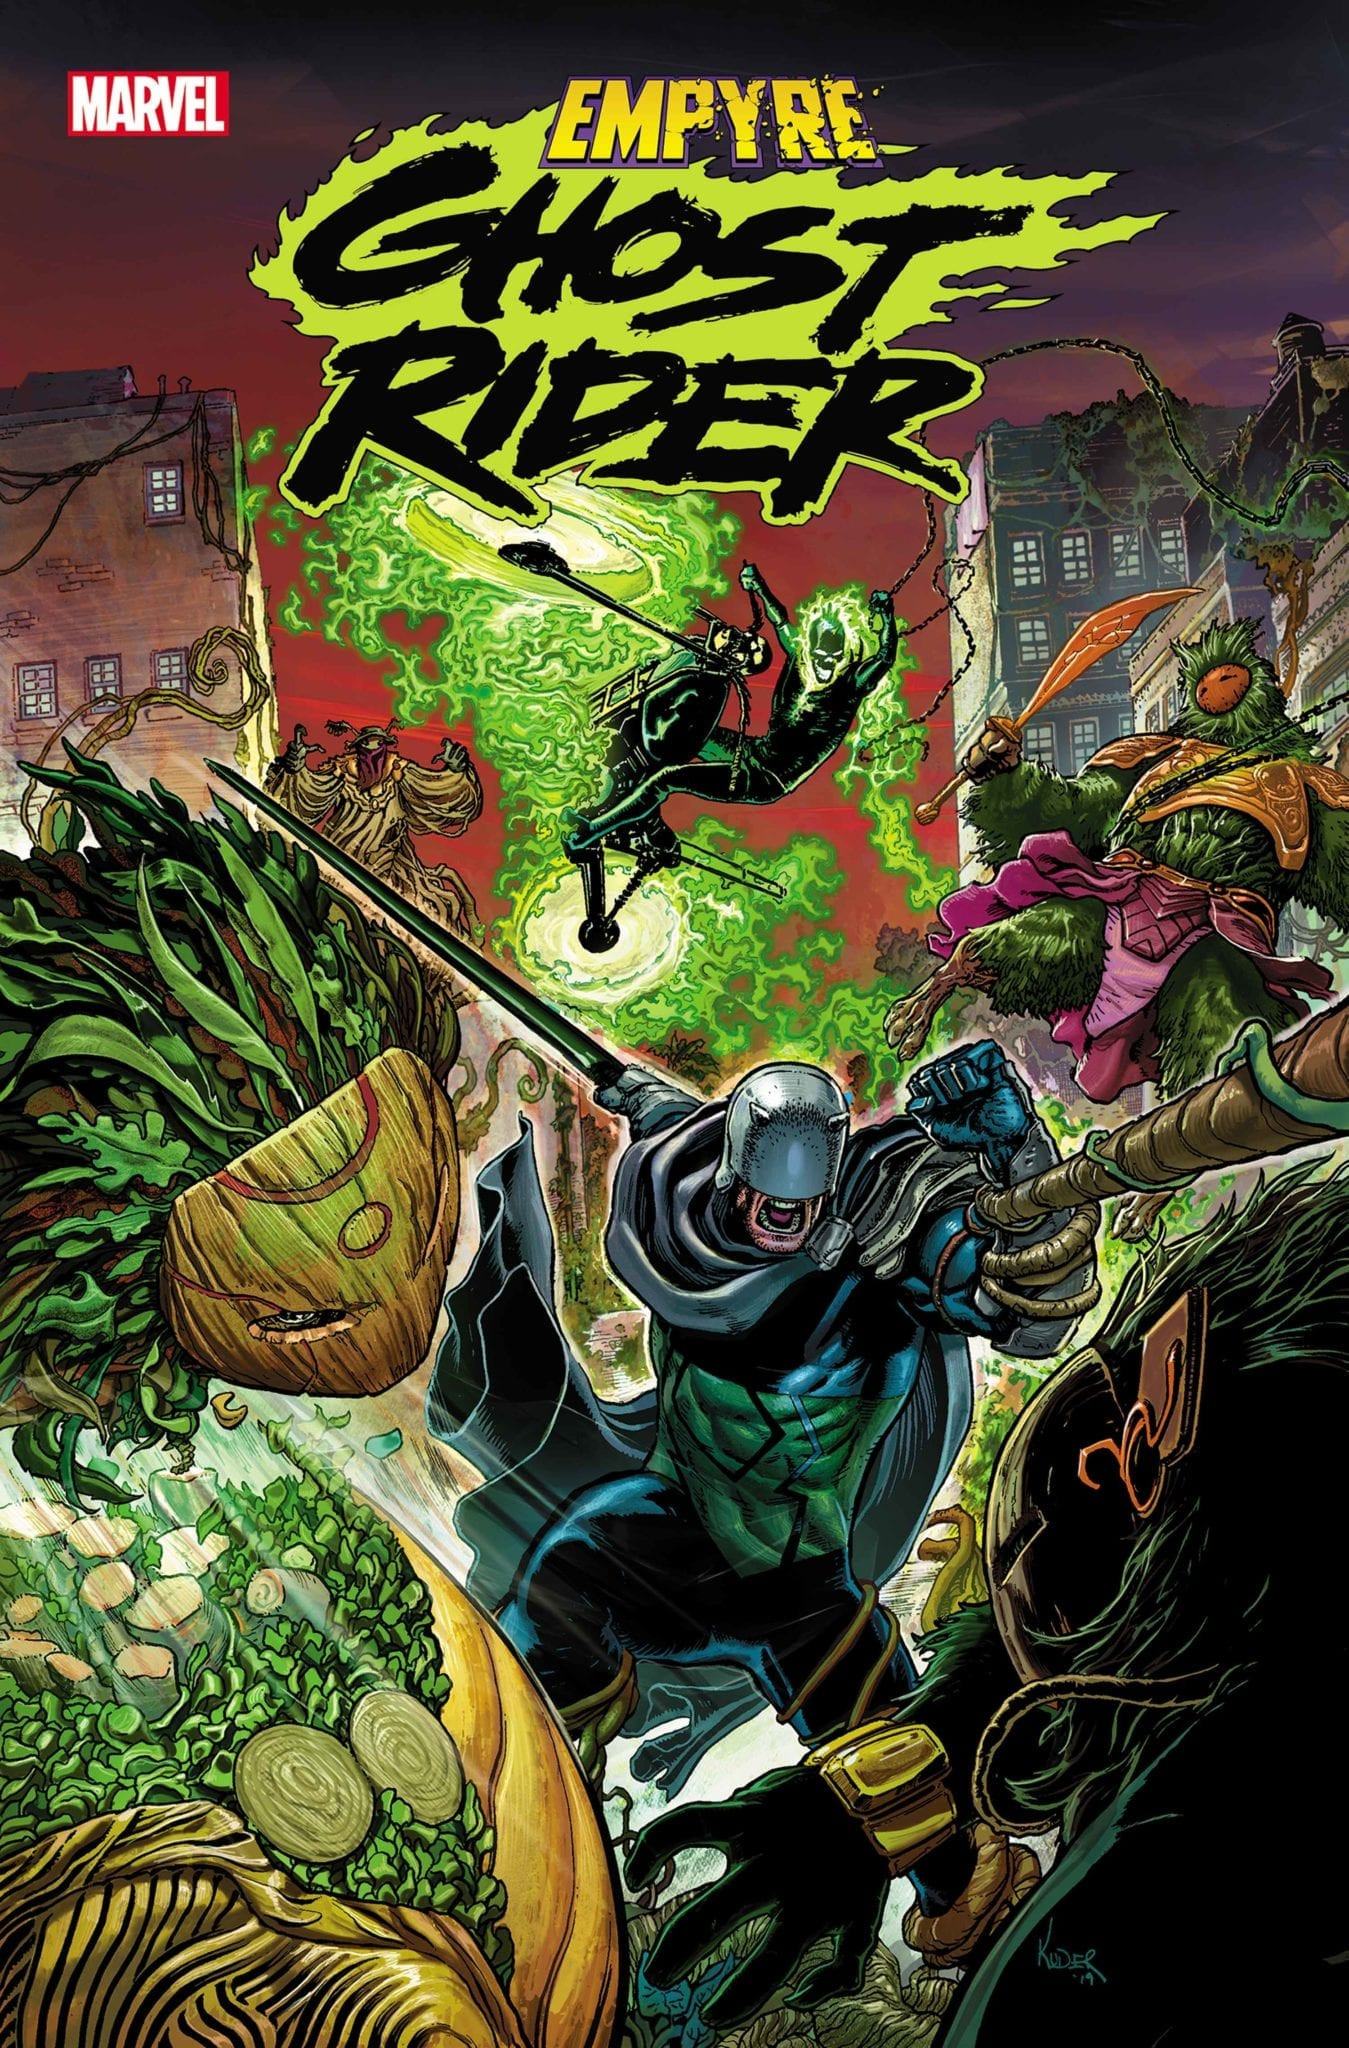 Marvel Comics Announces EMPYRE: GHOST RIDER #1 One-Shot For May